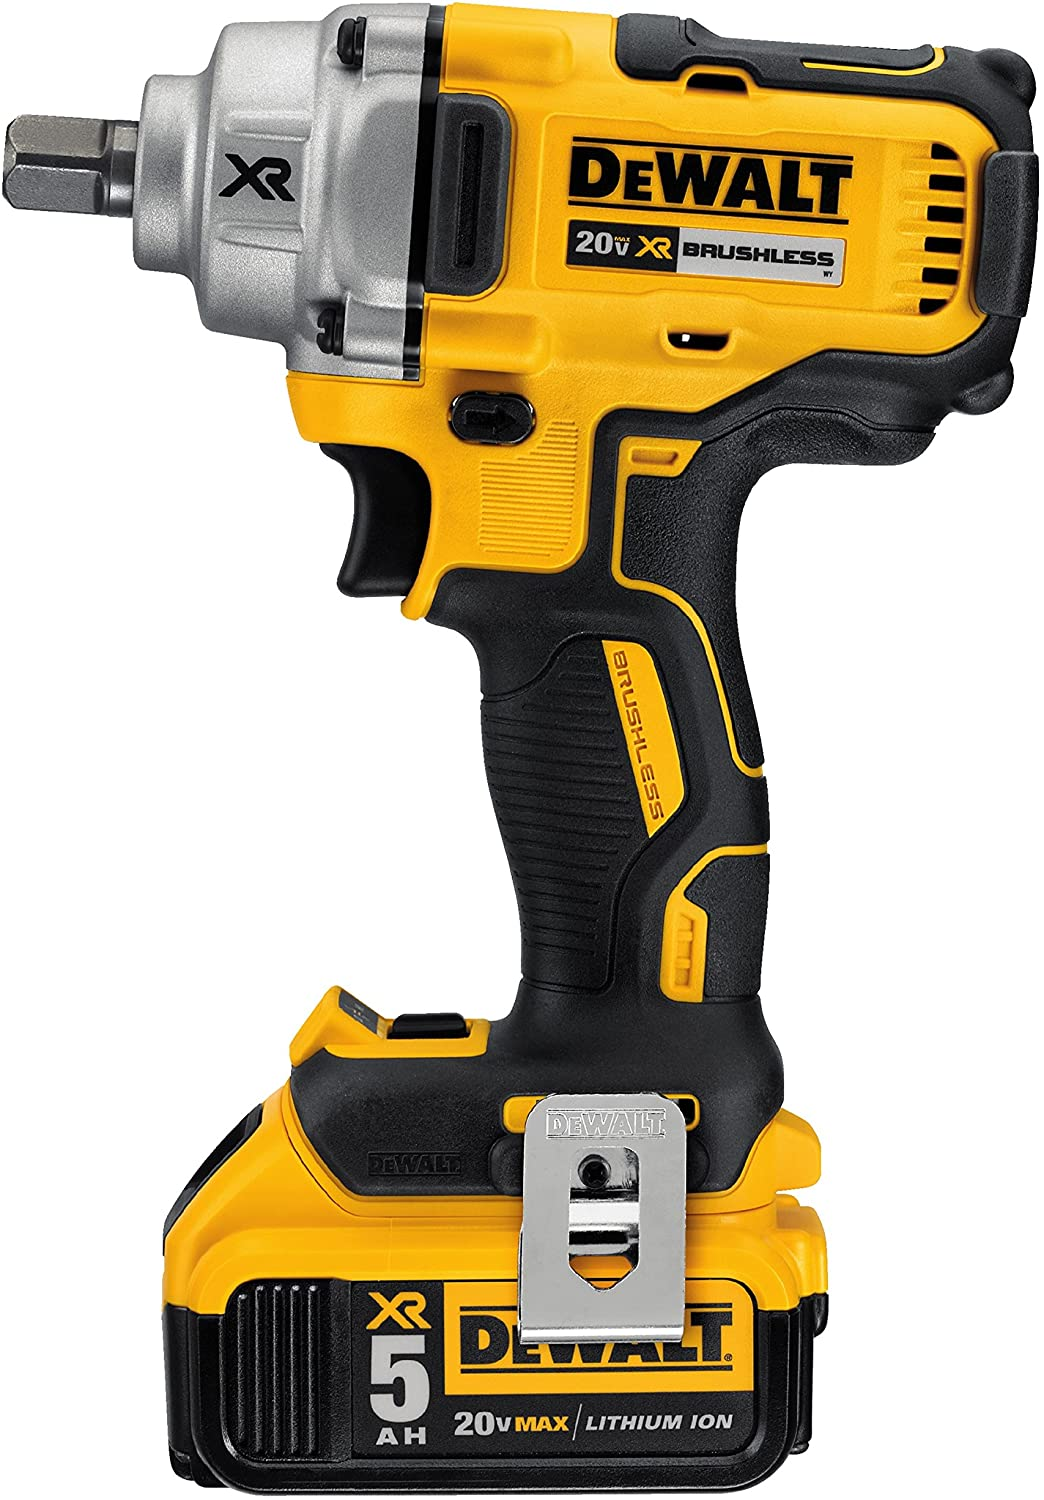 DEWALT 20V MAX XR Cordless Impact Wrench Kit with Detent Pin Anvil, 1 2-Inch DCF894P2